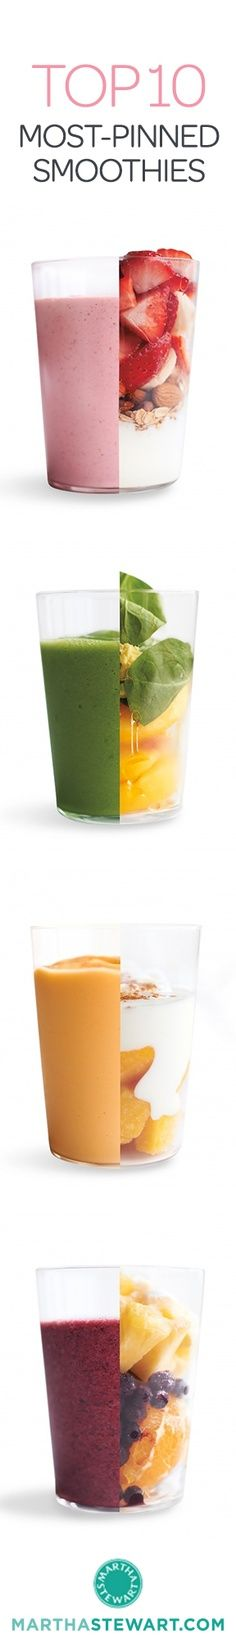 Found this and thought of Joey! Haha-->Top 10 Most Pinned Smoothie Recipes from Martha Stewart